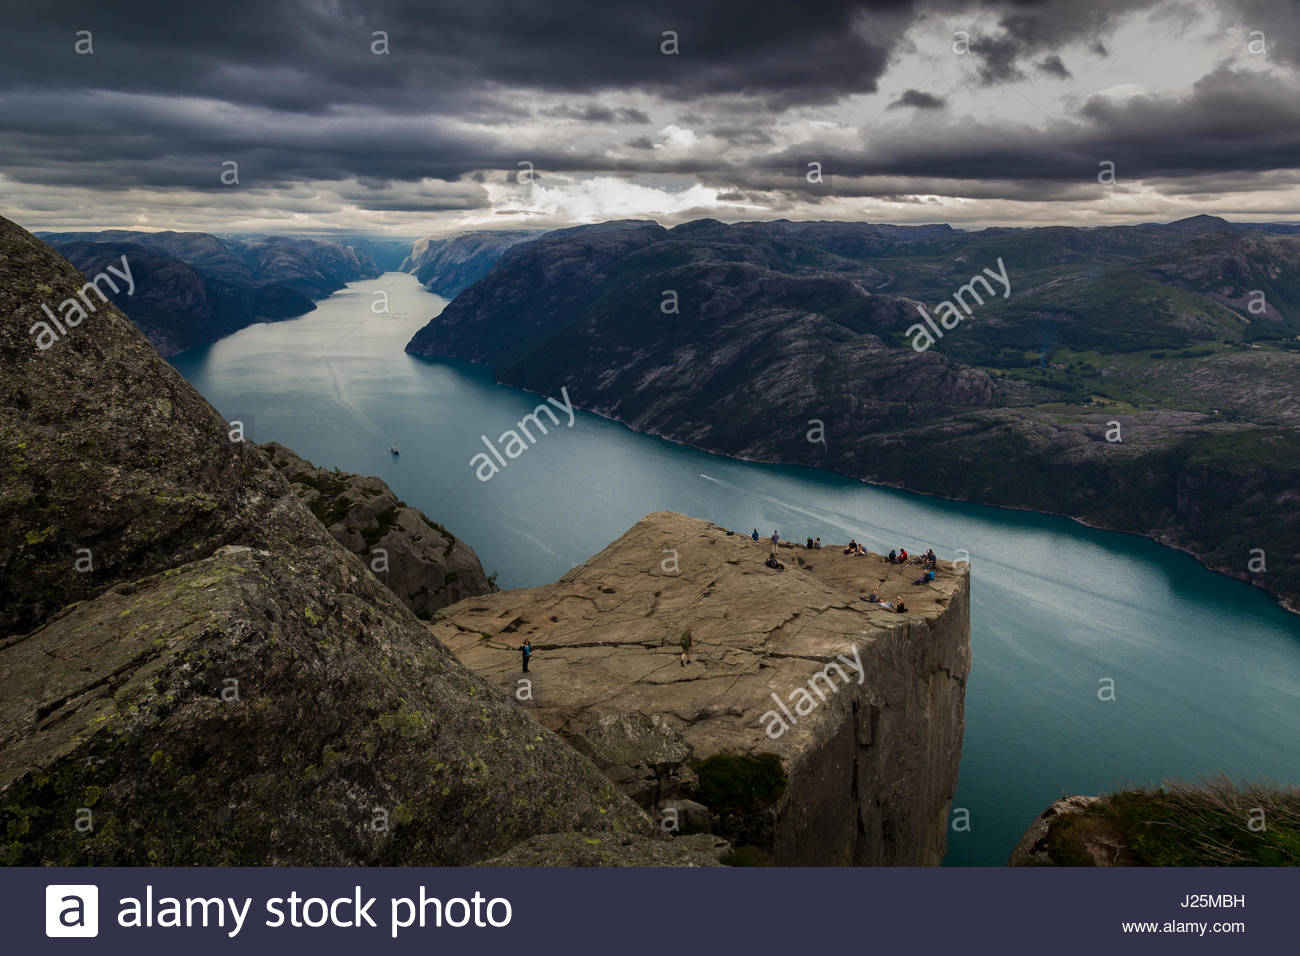 Preikestolen or Prekestolen (Preacher's Pulpit or Pulpit Rock)  is a famous tourist attraction in the municipality - Stock Image